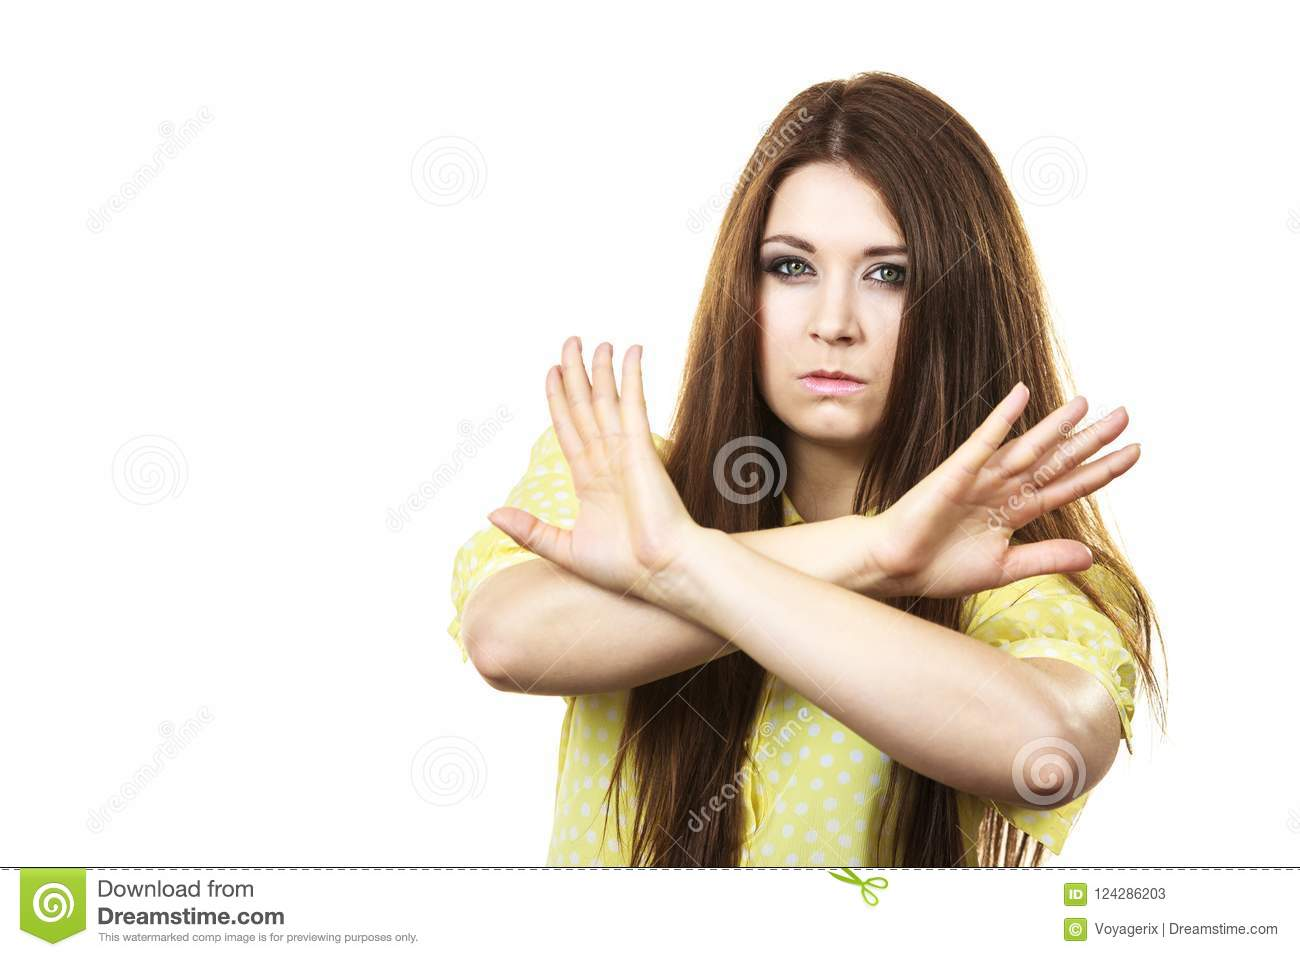 Assertive woman showing stop gesture